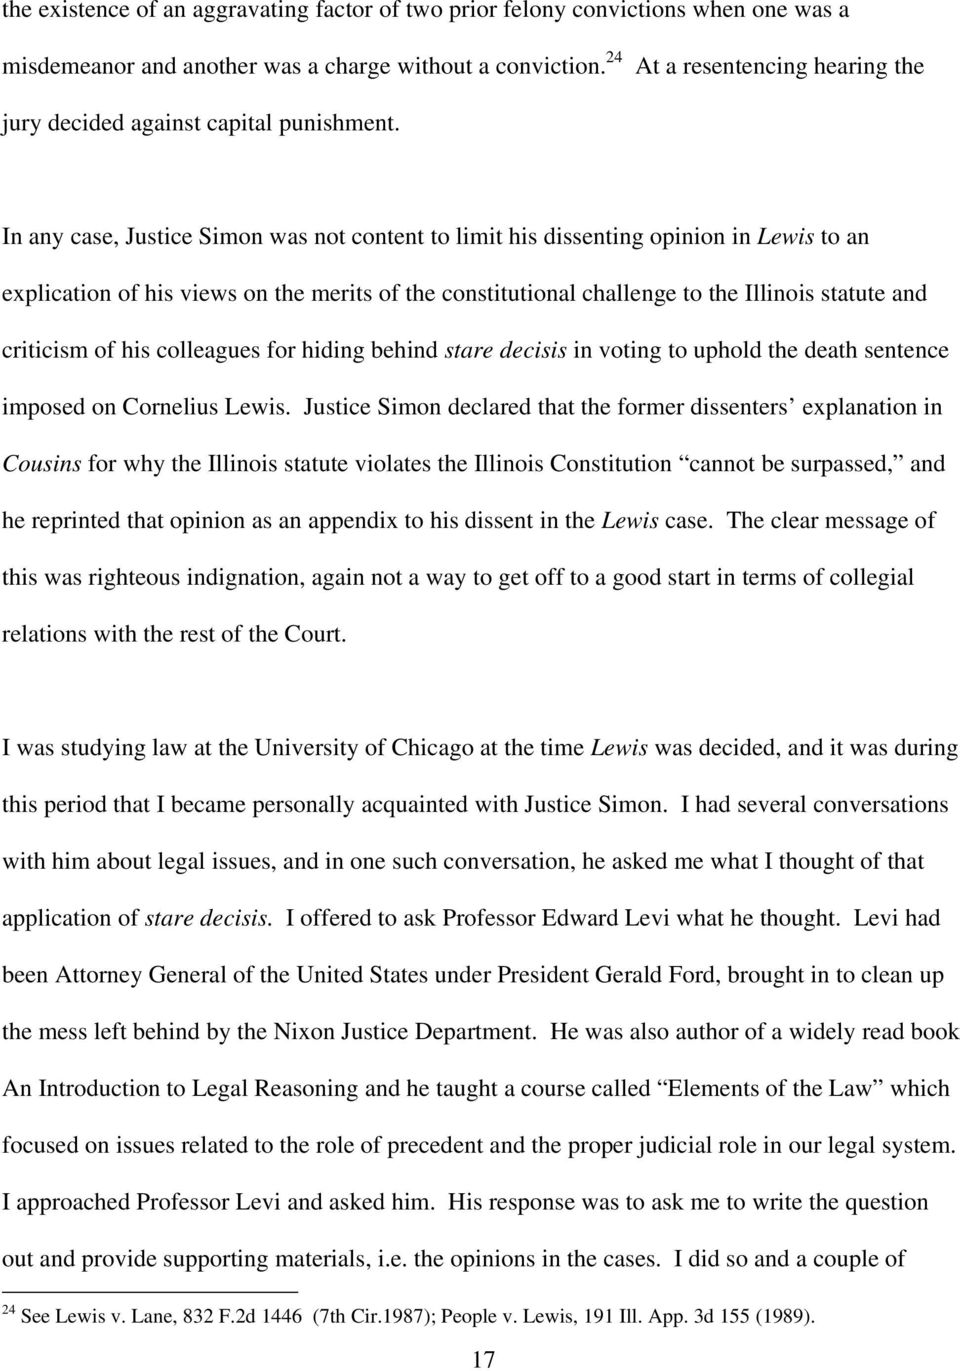 In any case, Justice Simon was not content to limit his dissenting opinion in Lewis to an explication of his views on the merits of the constitutional challenge to the Illinois statute and criticism